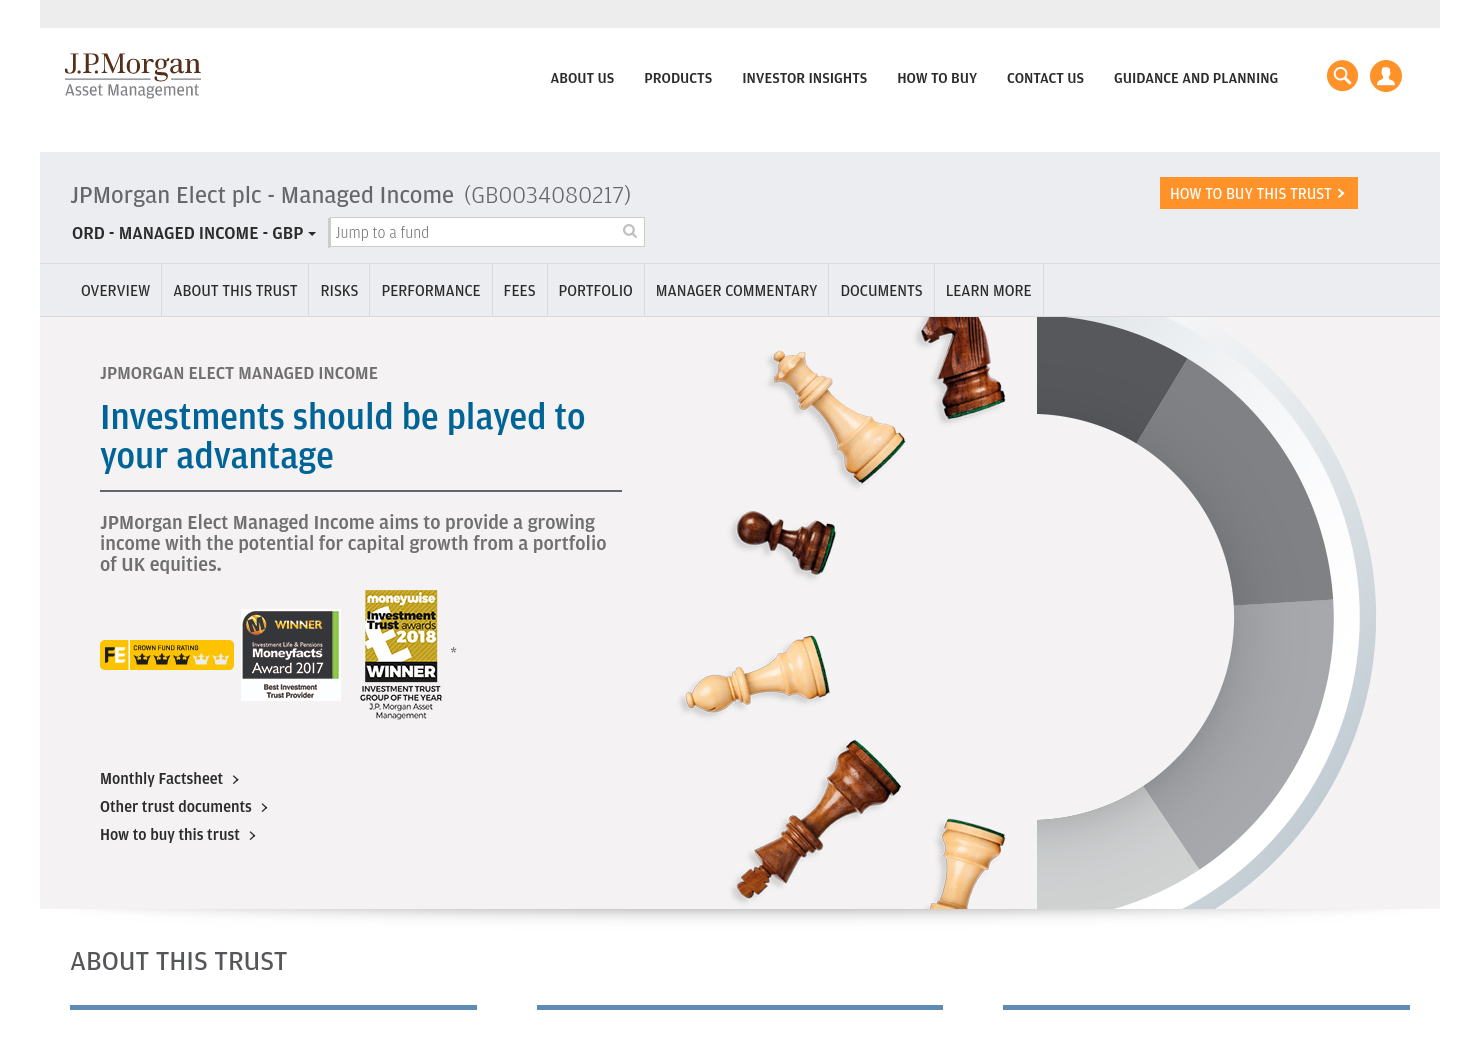 JPMorgan Elect Managed Income Home Page